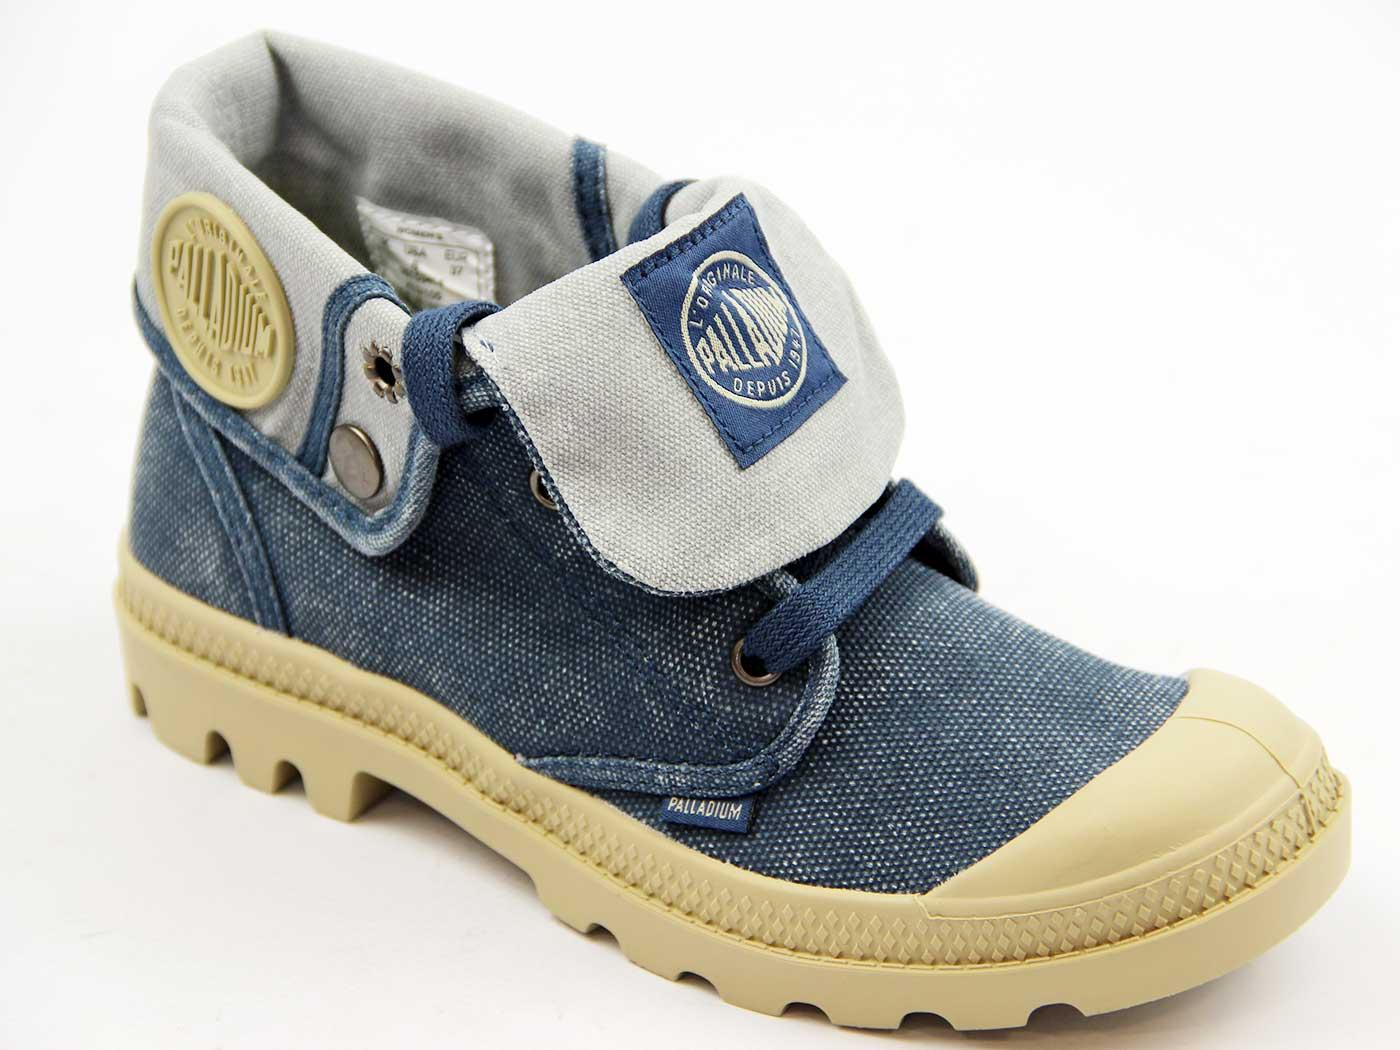 Baggy Low PALLADIUM Womens Retro Canvas Boots BLUE